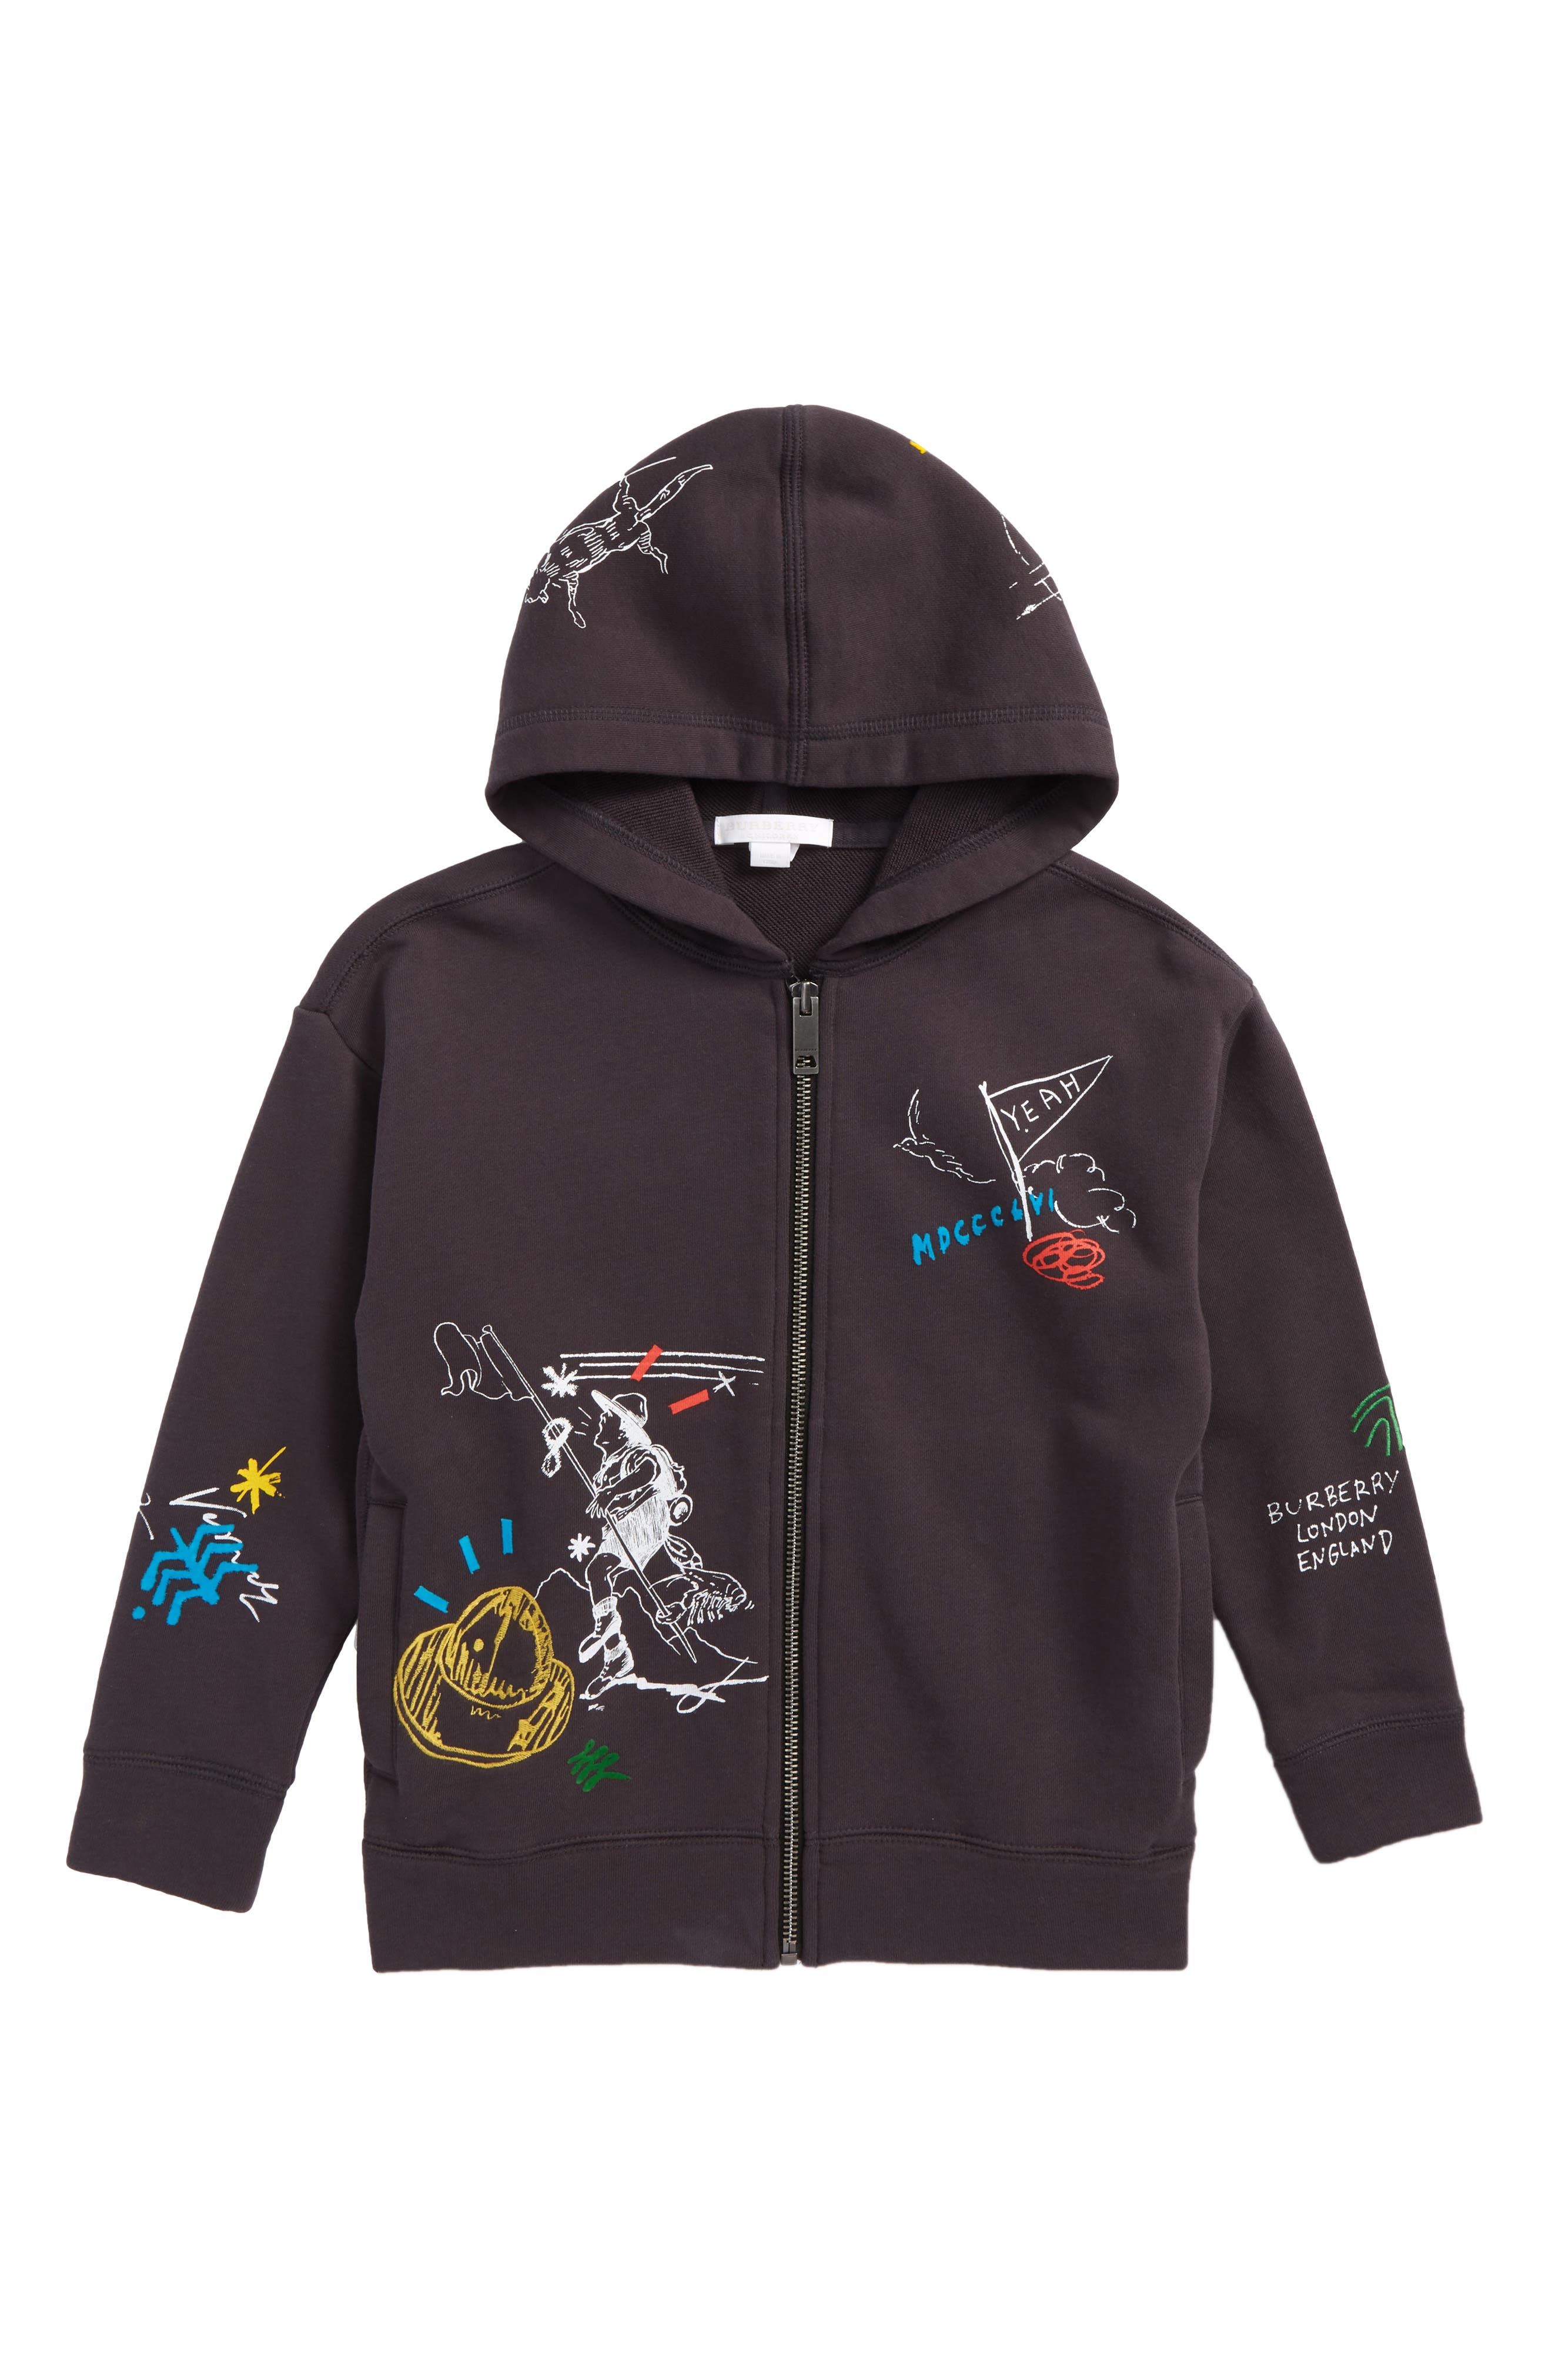 Sailing Graphic Hoodie,                         Main,                         color, Charcoal